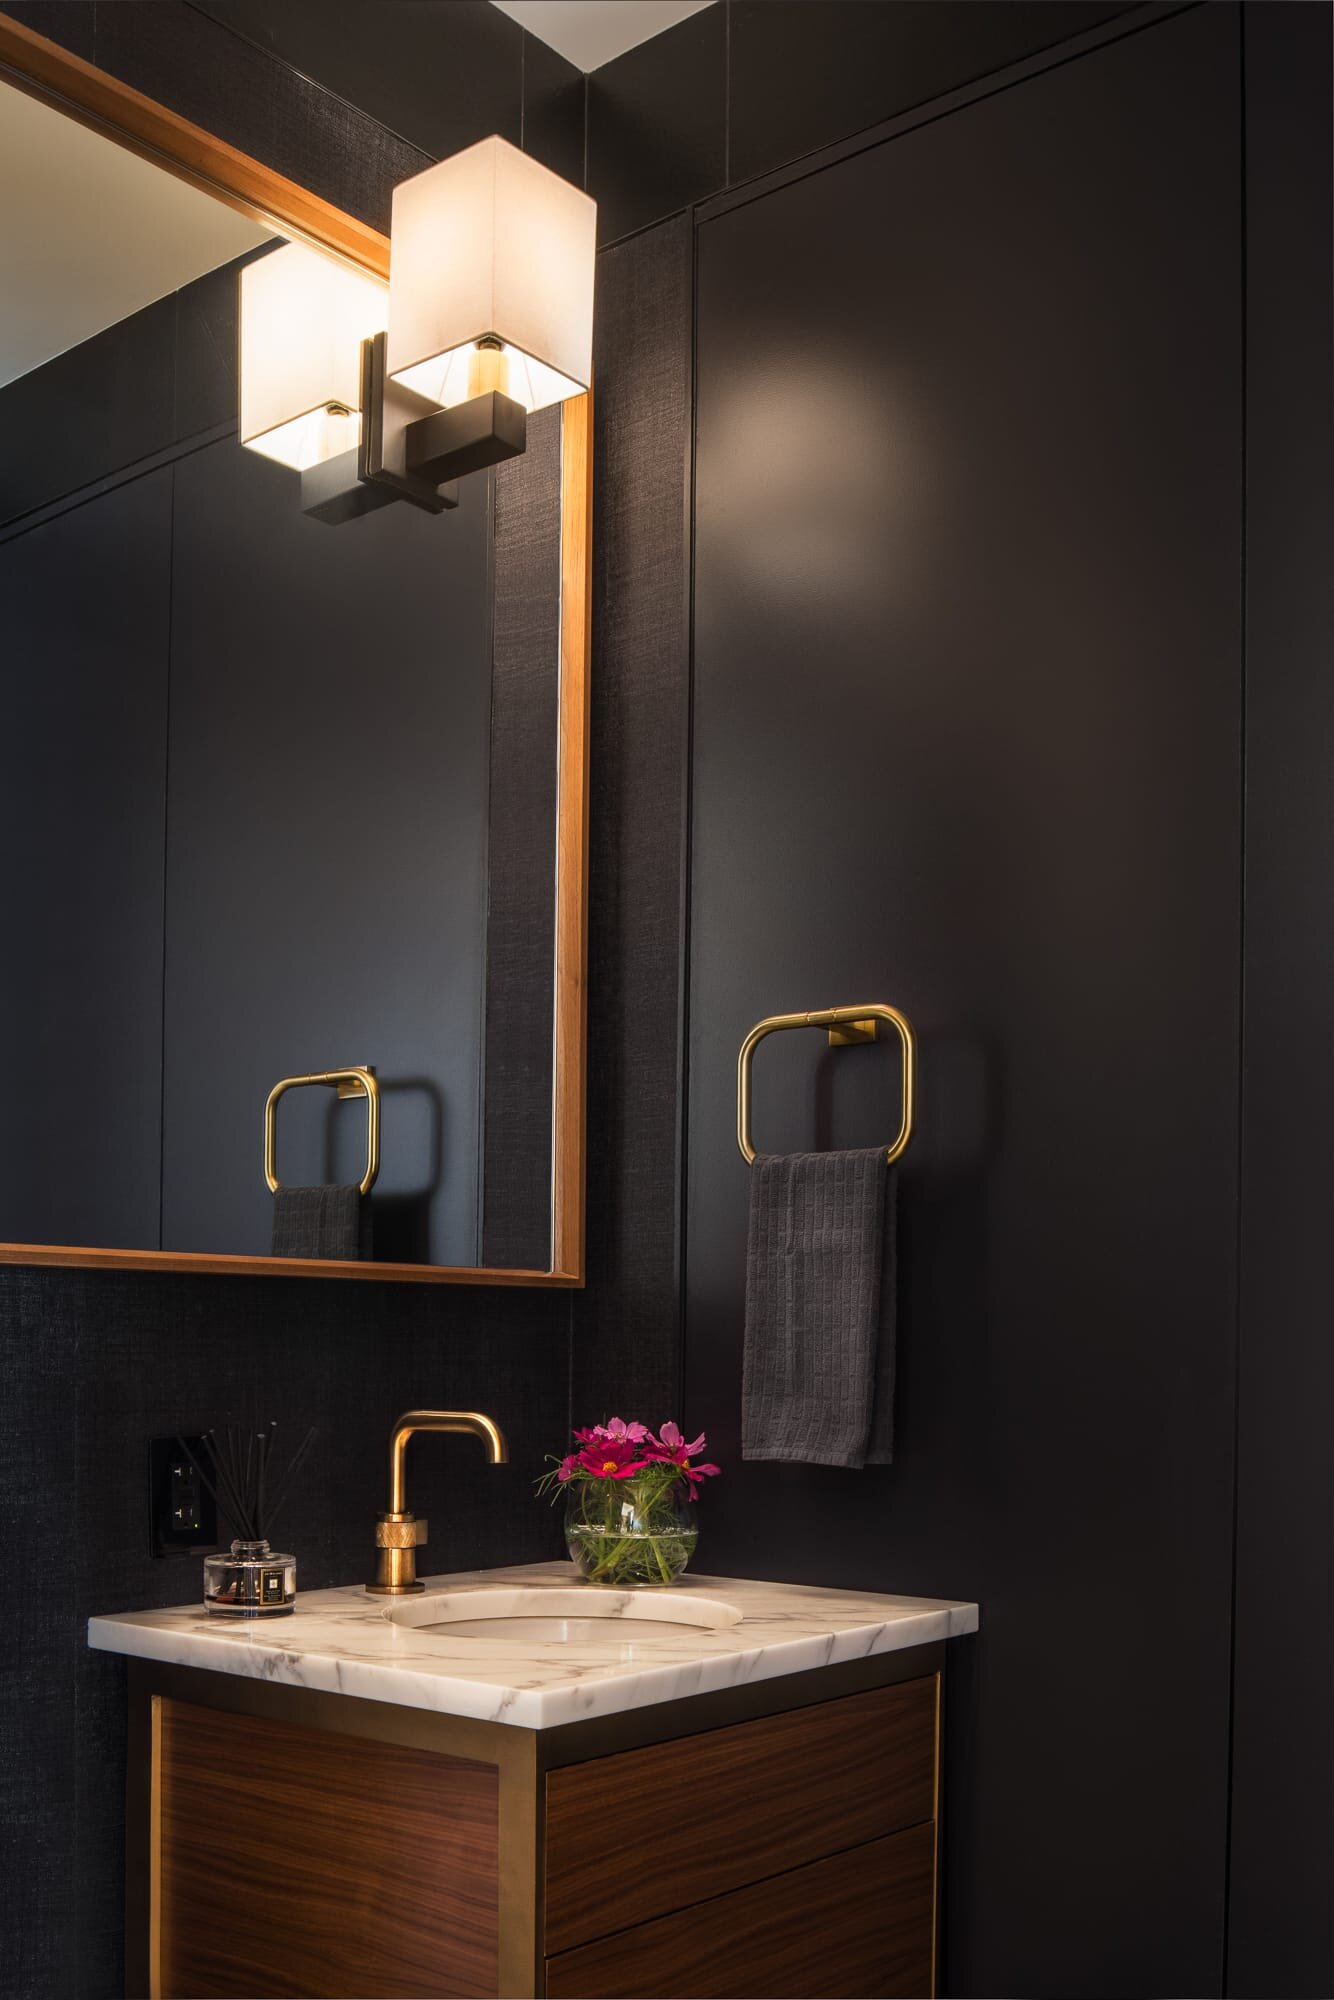 Bathroom details designed by Andrew Wilkinson Architect